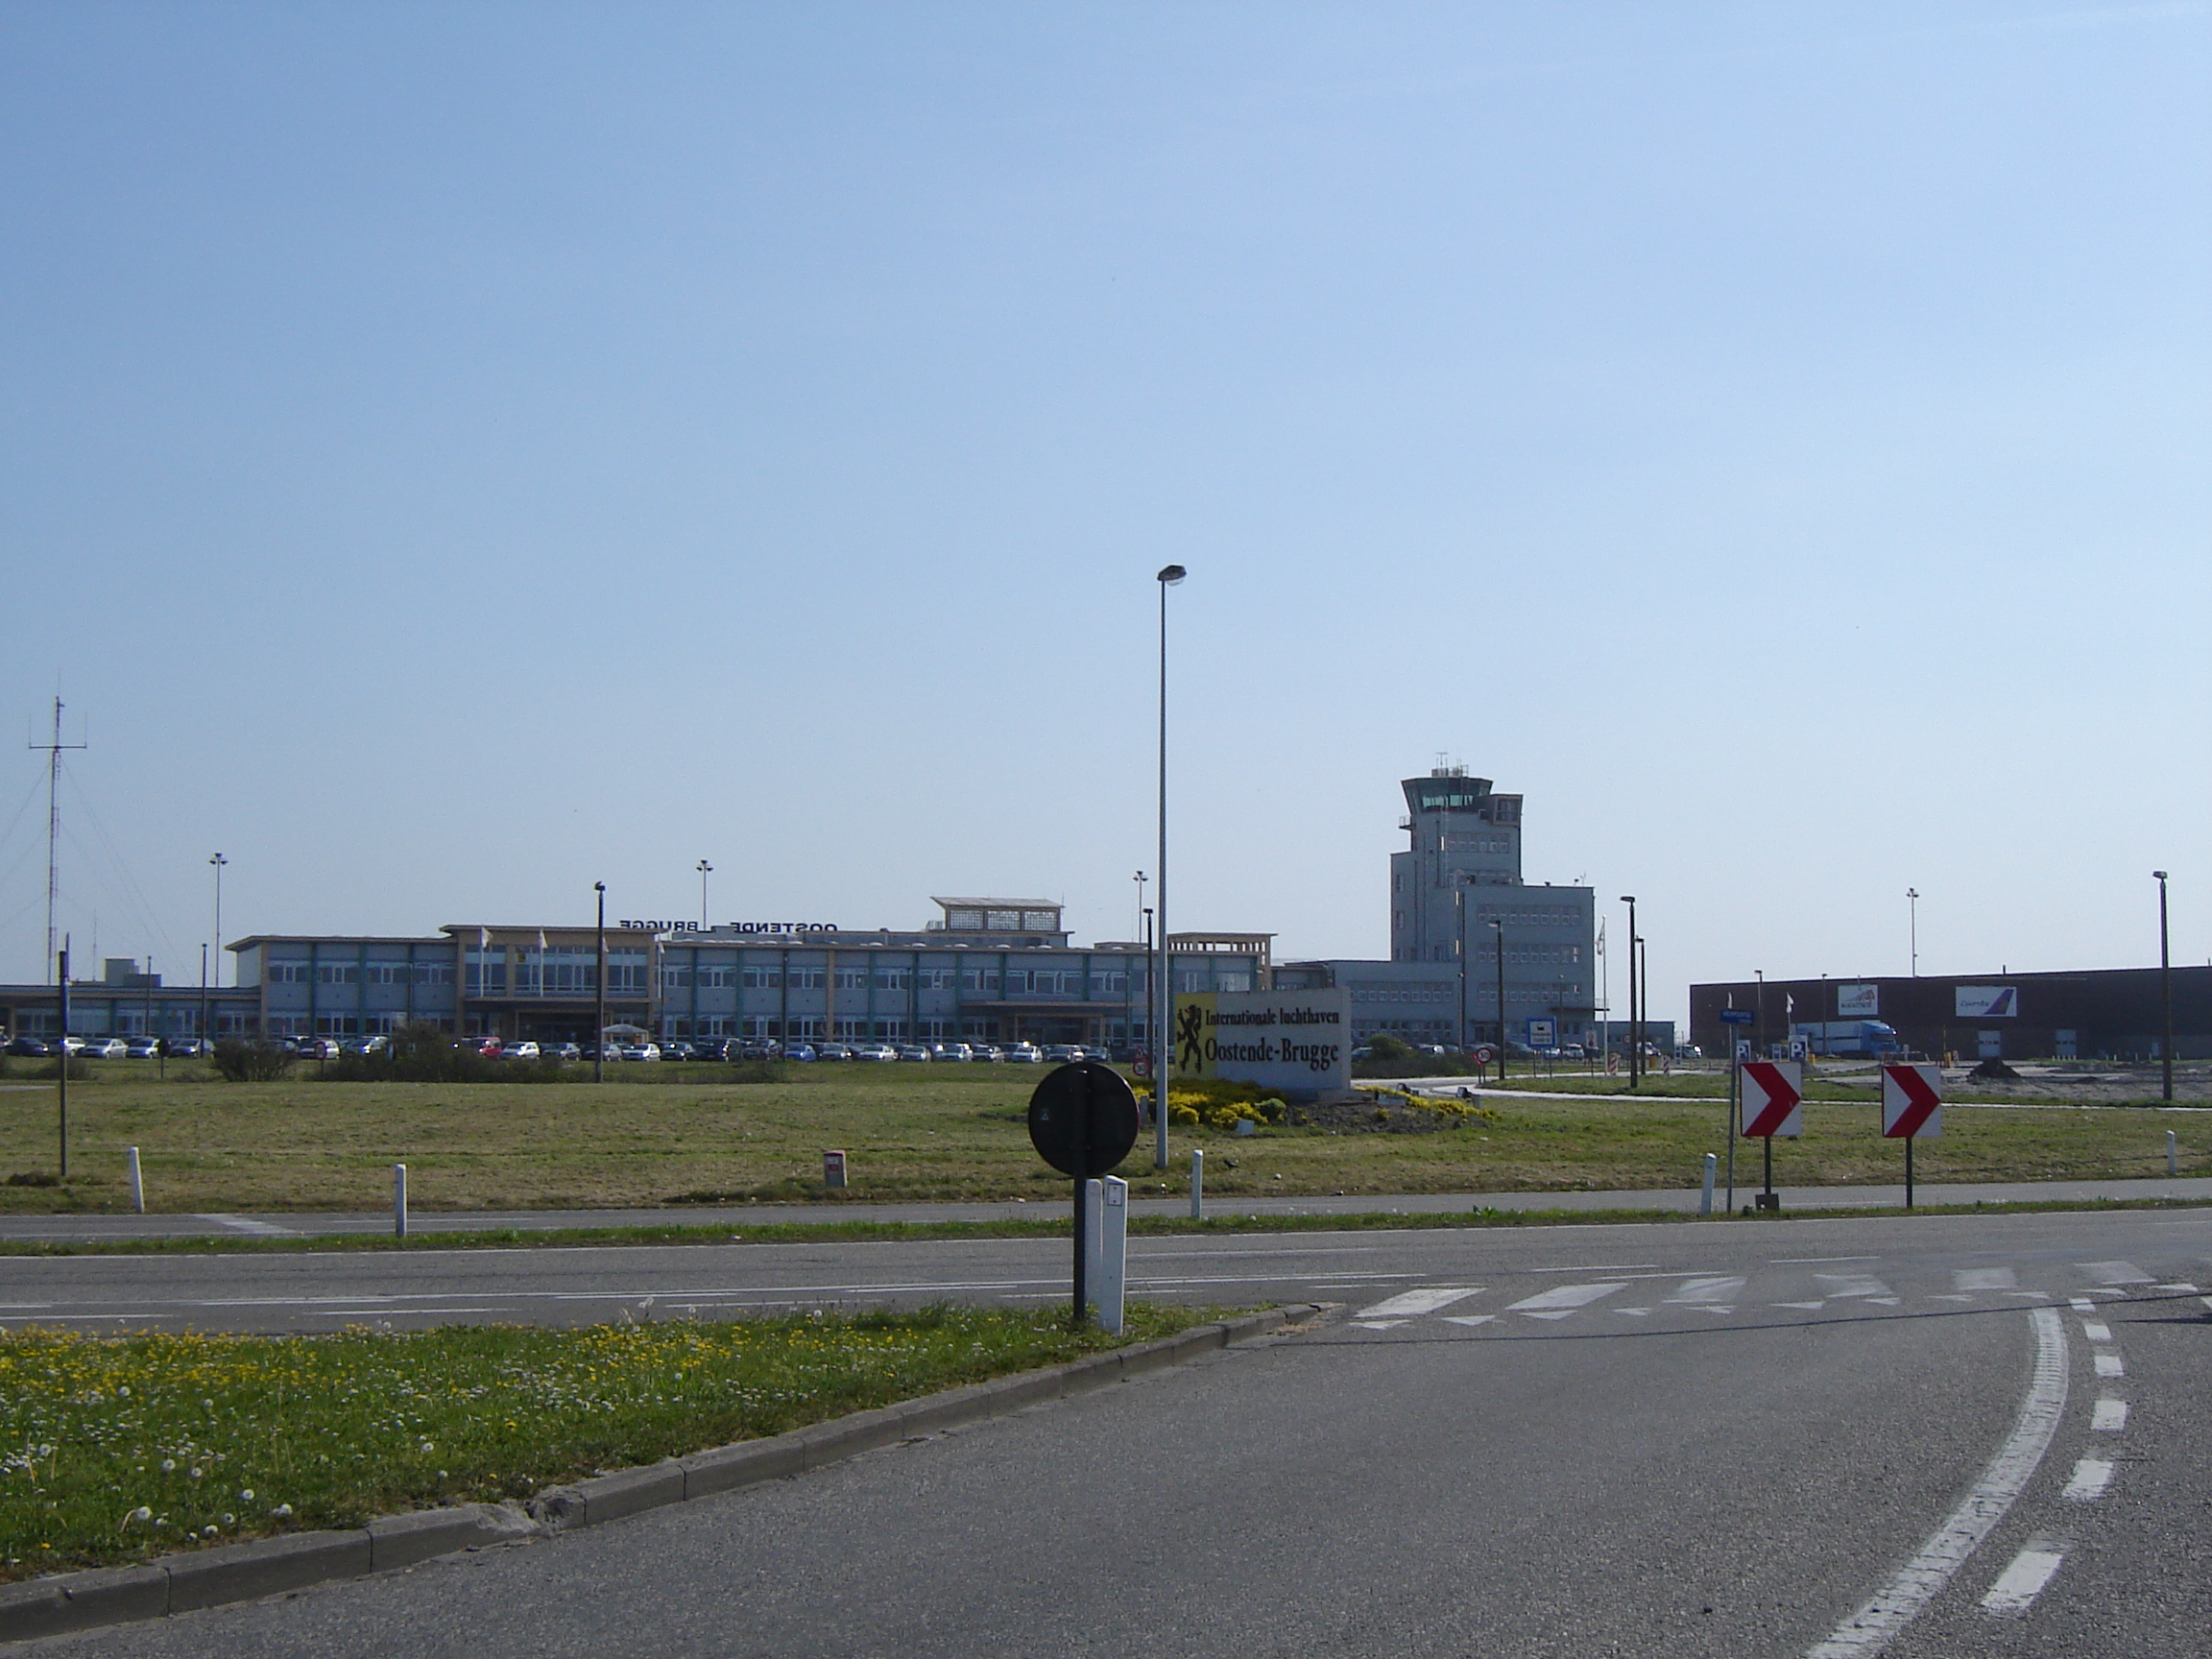 Airport Oostende Bruges (Ostend-Bruges International Airport). Official sayt.2